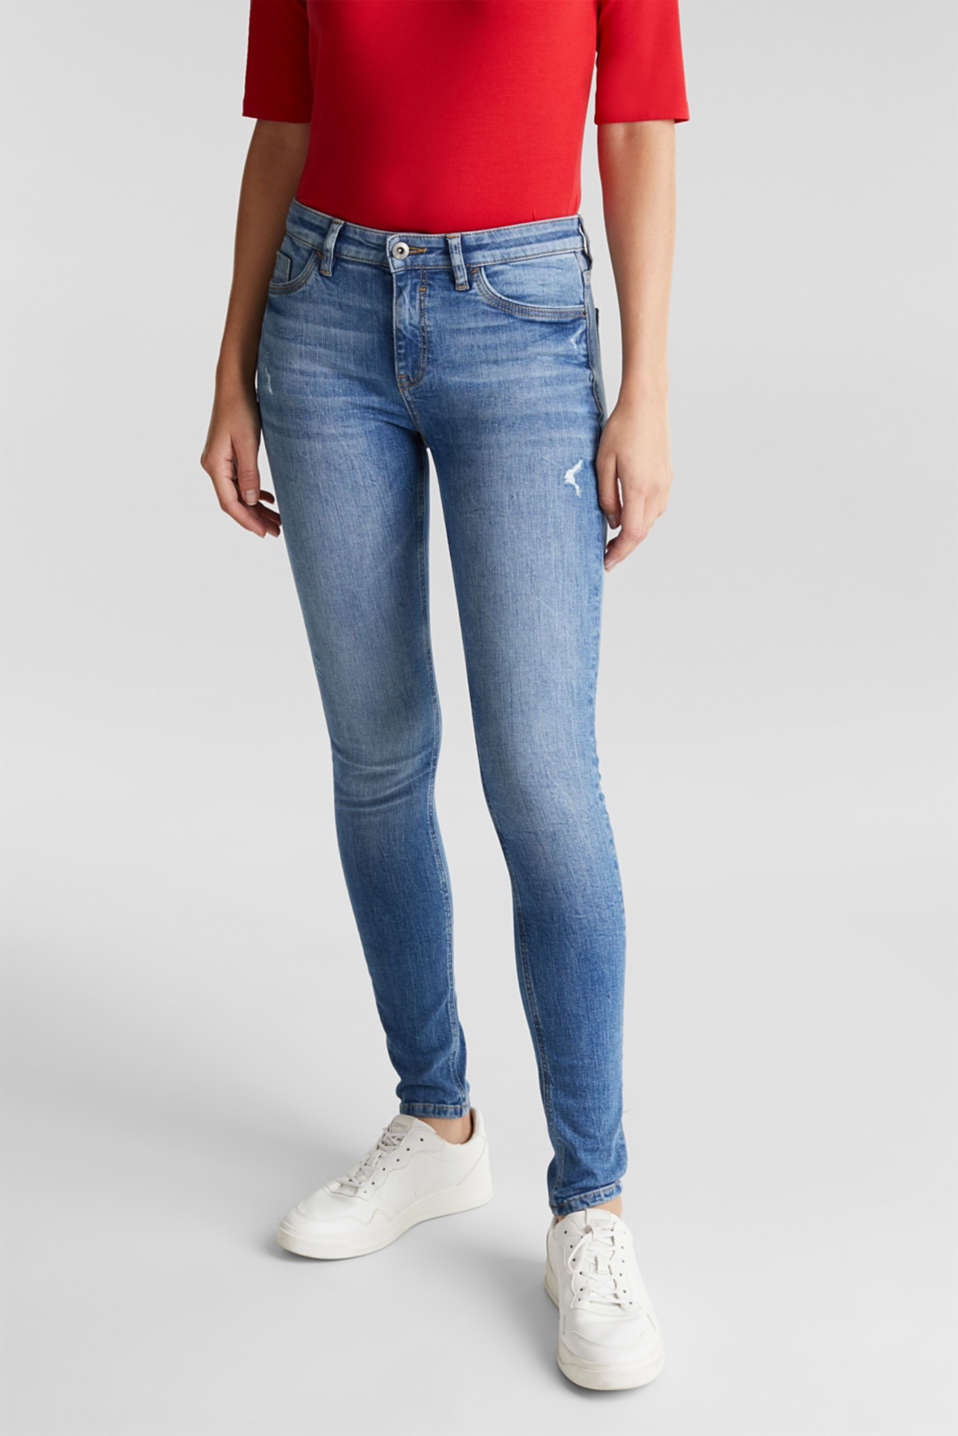 edc - Skinny jeans with organic cotton